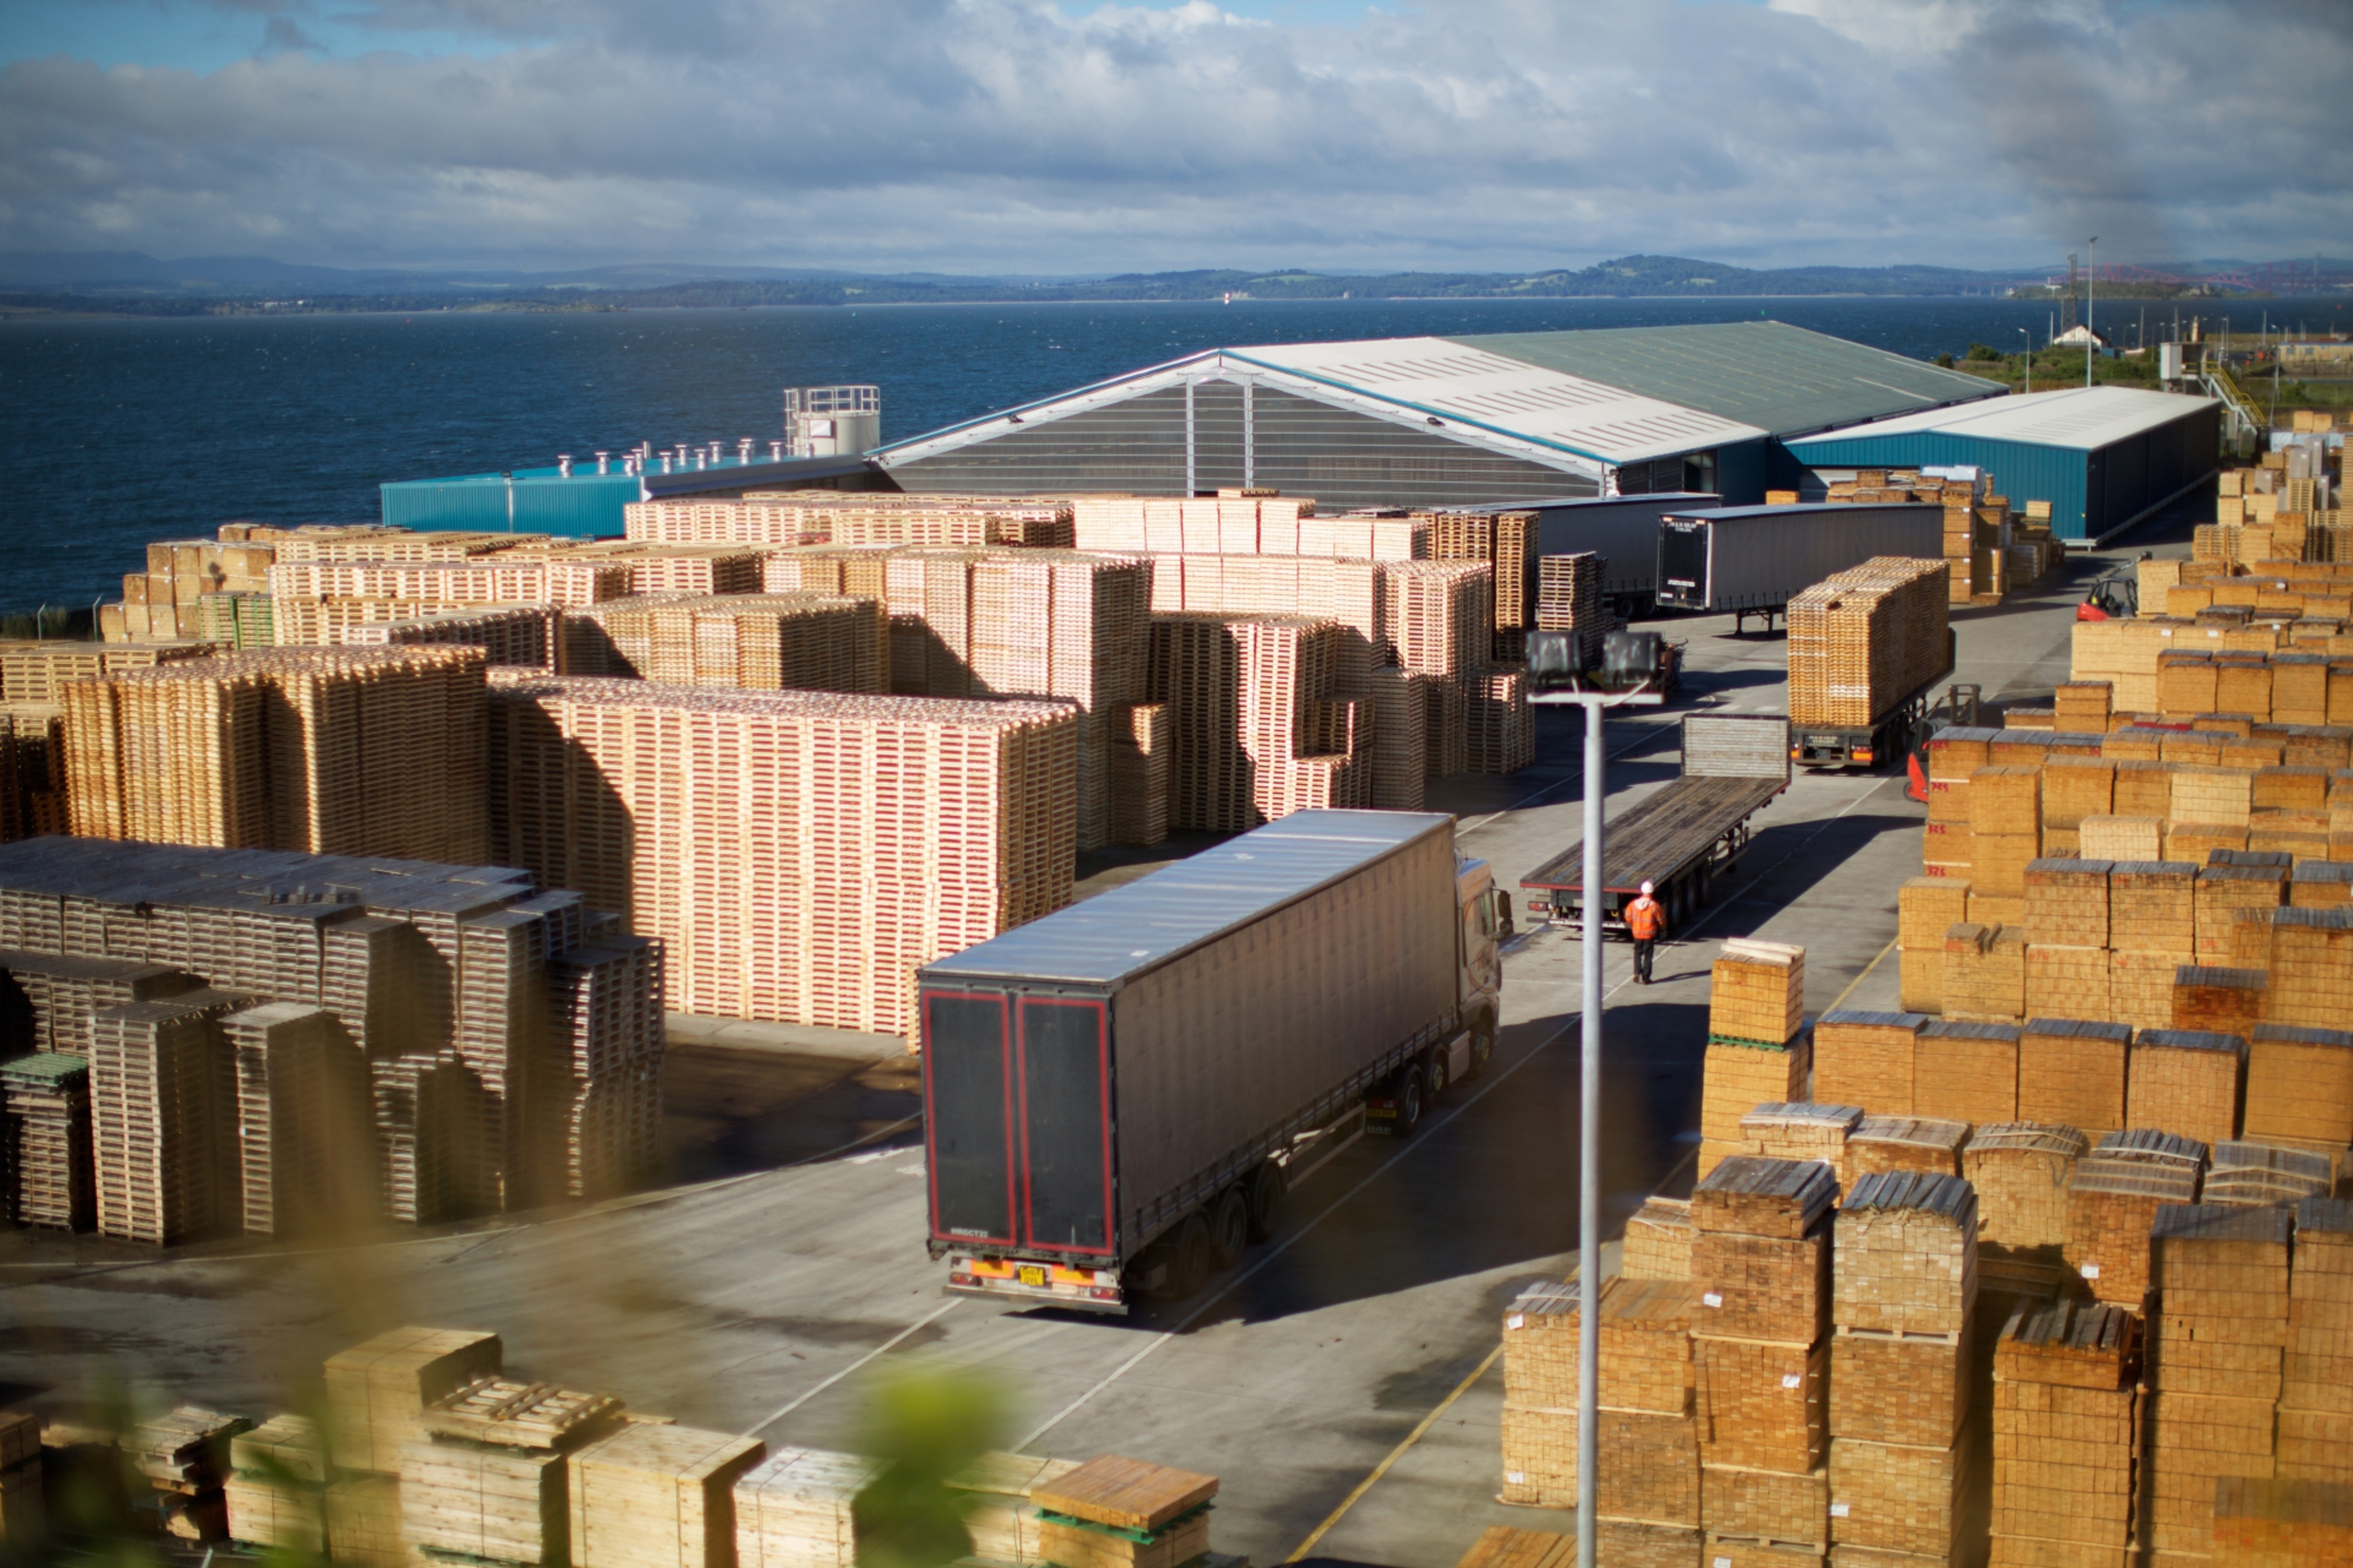 Scott Group's pallet manufacturing site in Burntisland.